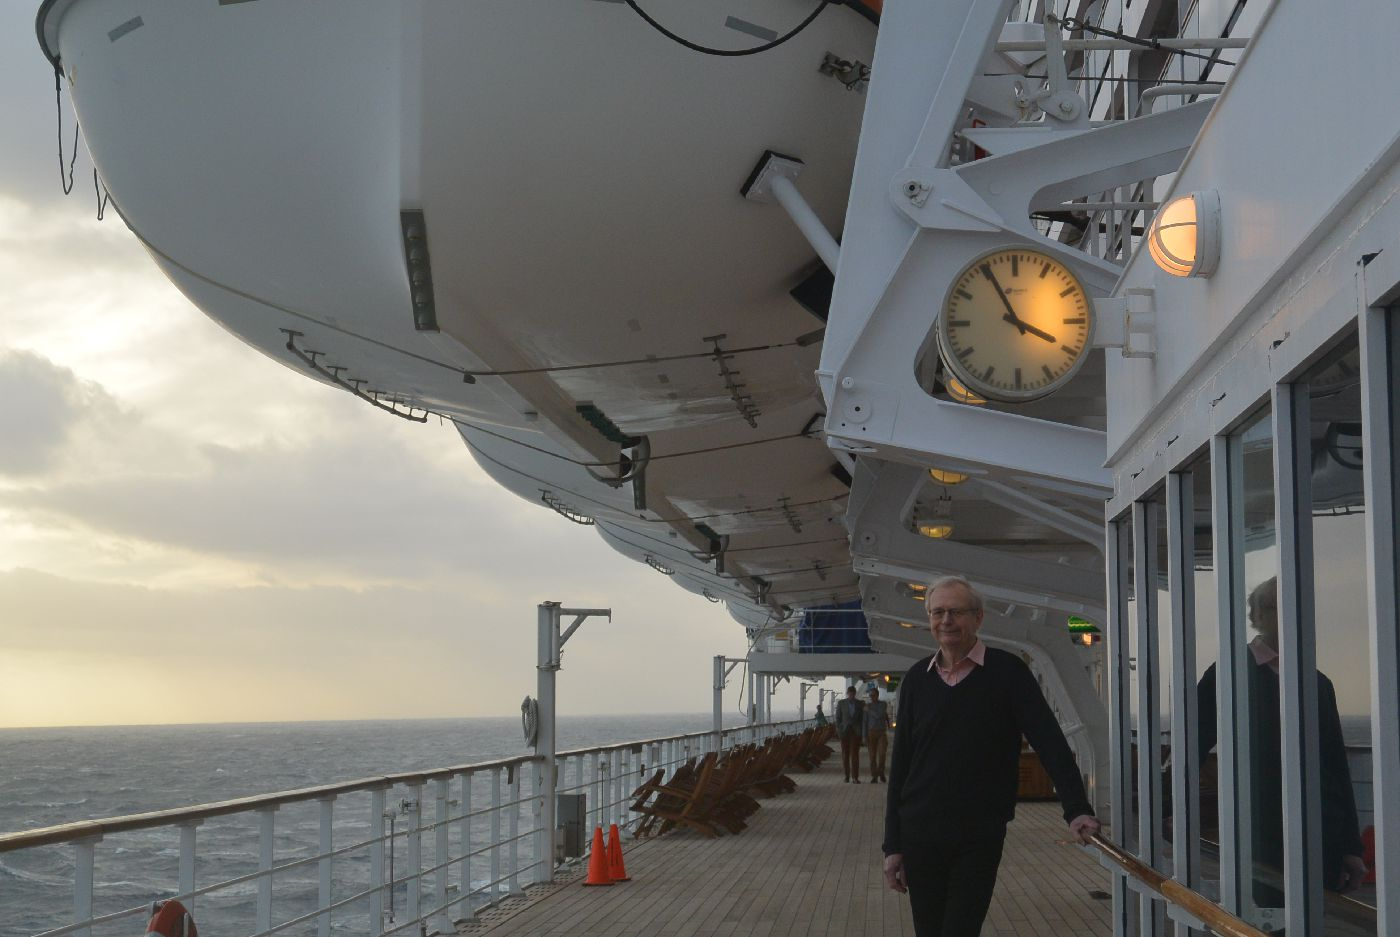 Errol Lincoln Uys on Atlantic Crosssing, Queen Mary 2, January 2015.